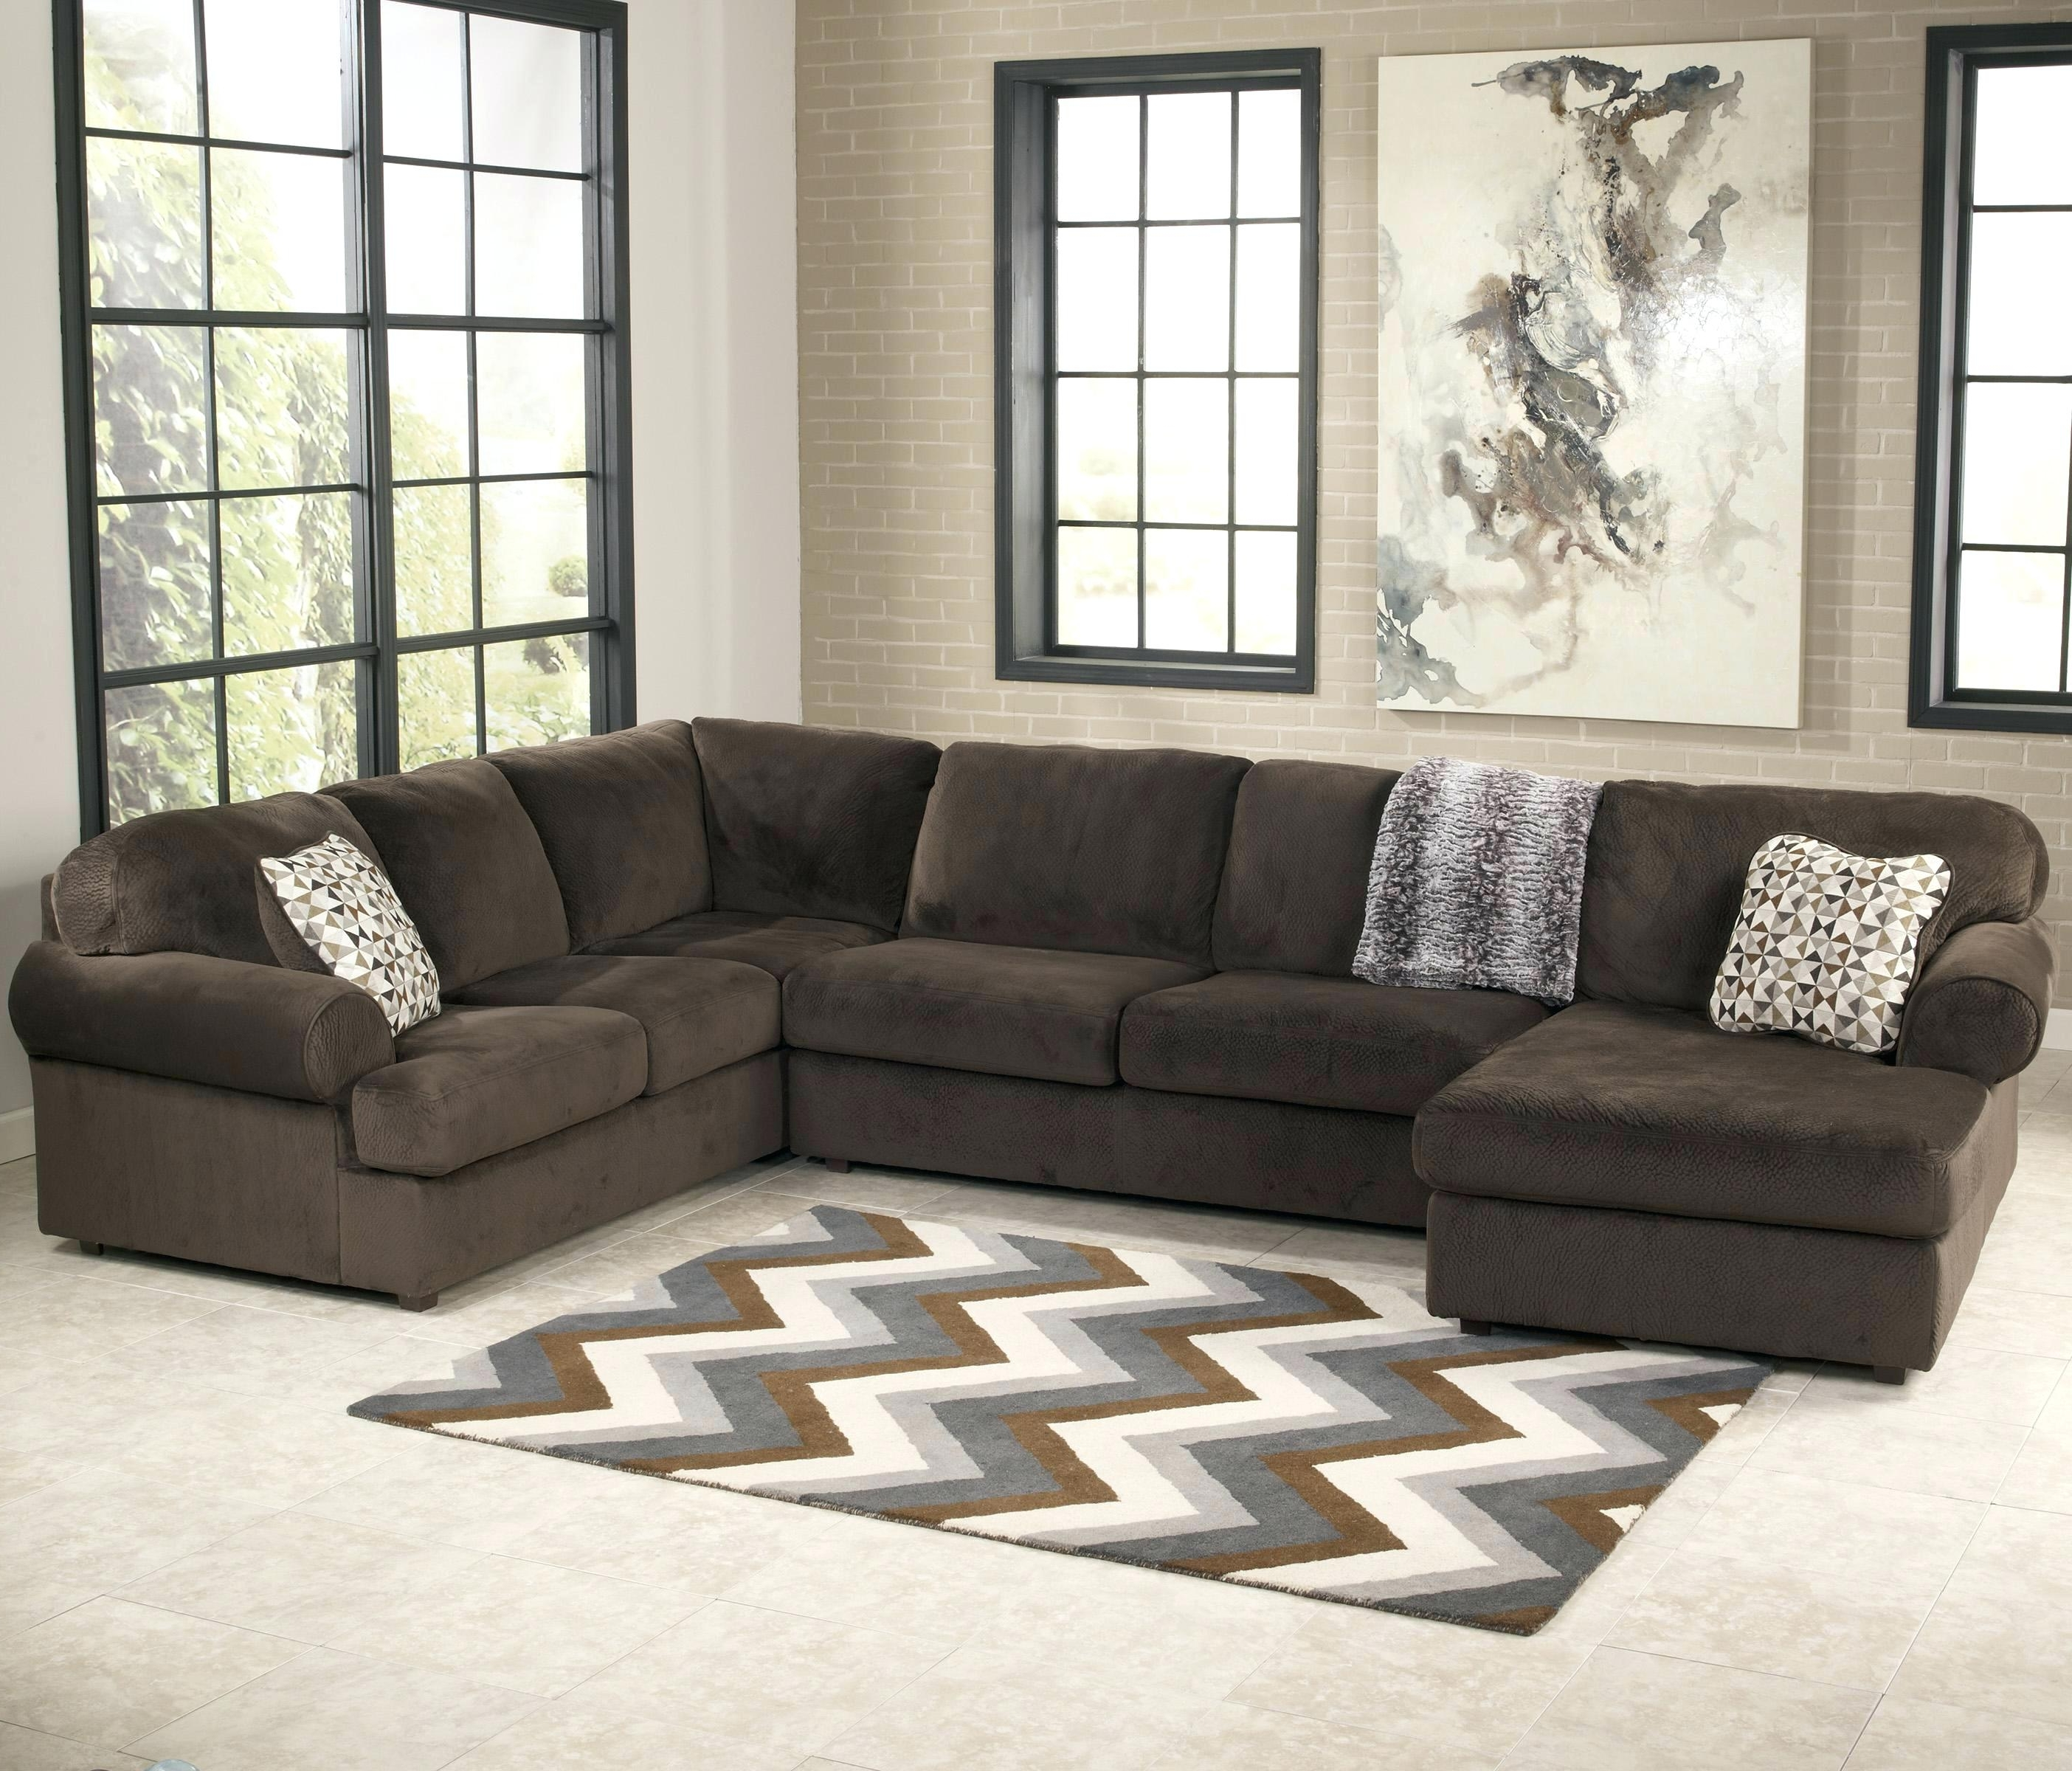 20 Photos Wilmington Nc Sectional Sofas